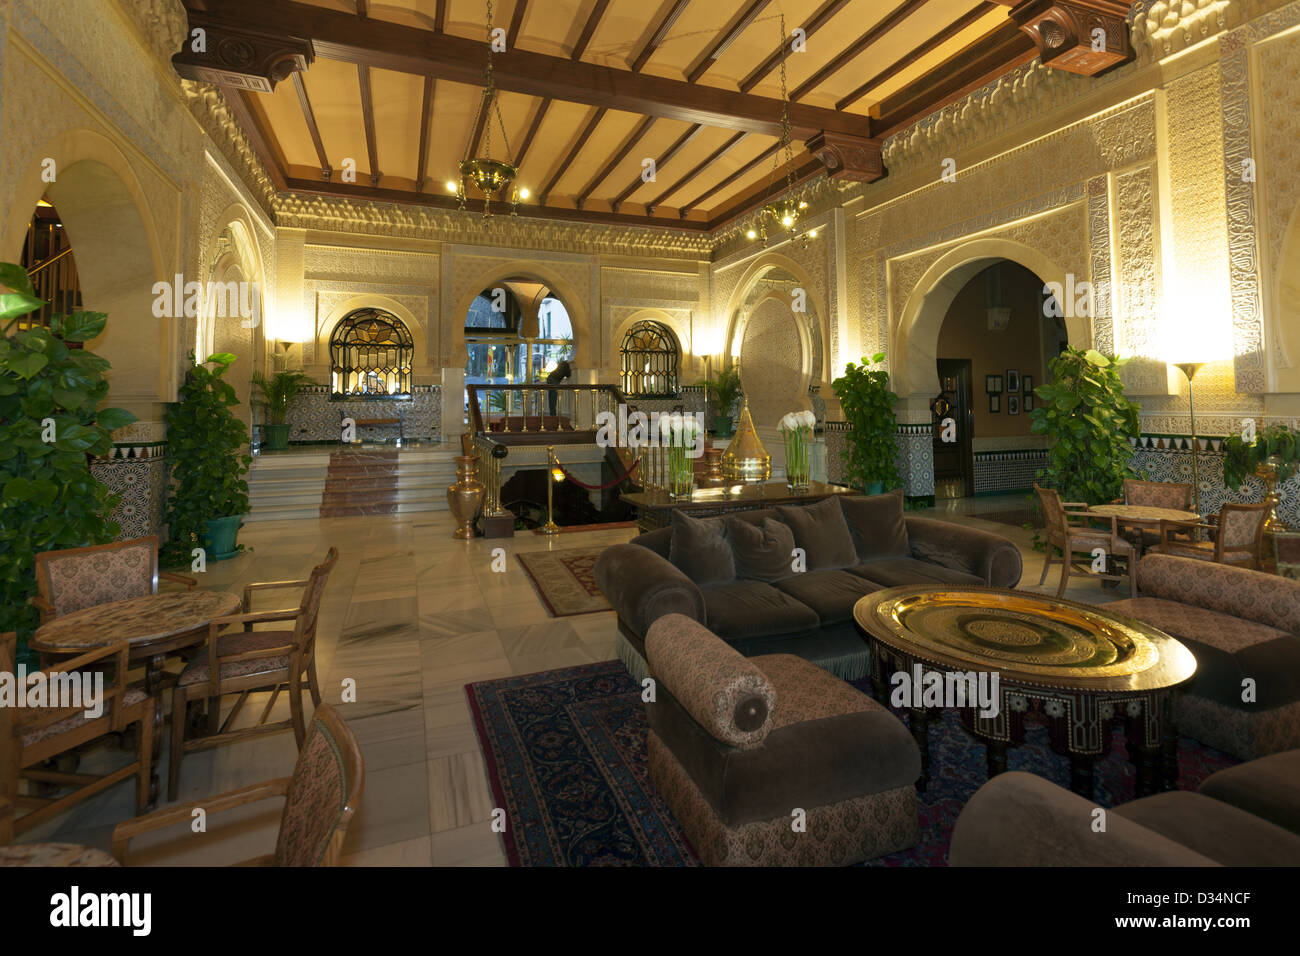 Interior of Hotel Alhambra Palace hotel Granada Spain